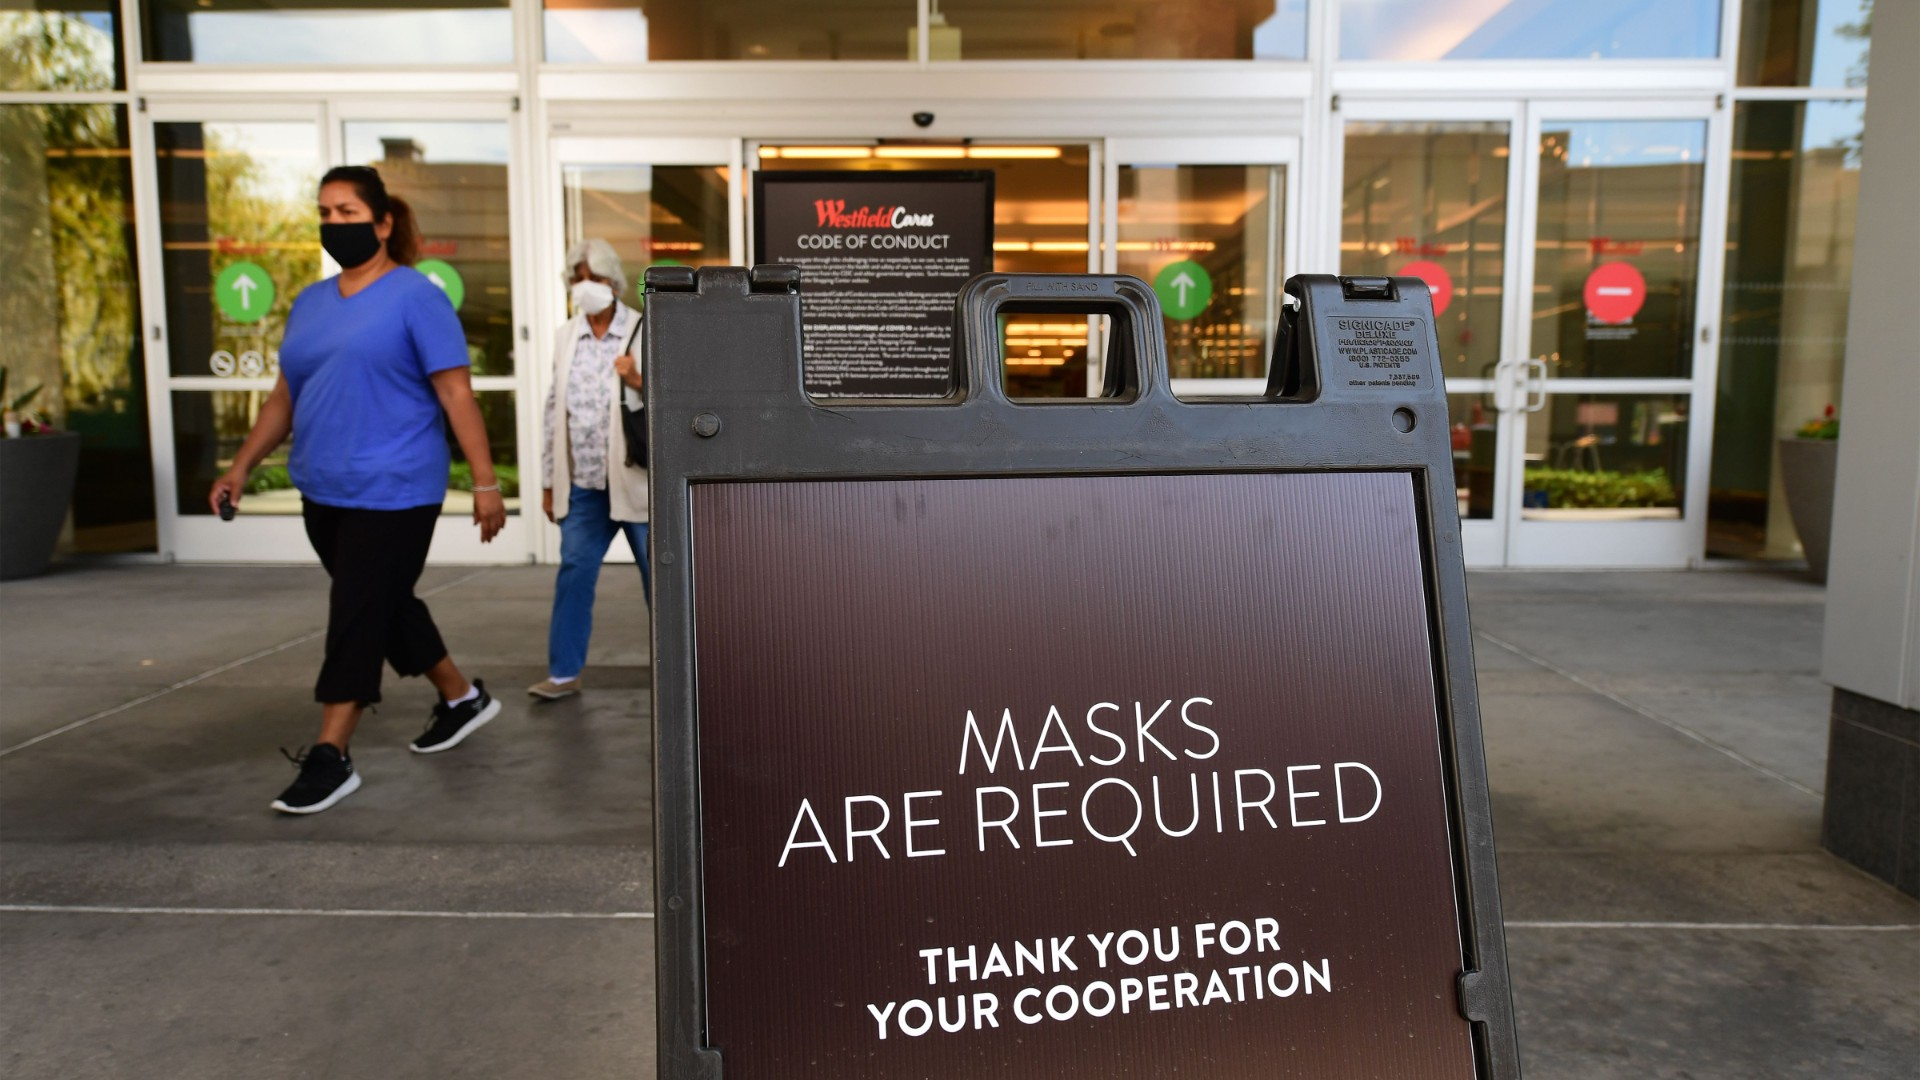 Women wearing facemasks exit a shopping mall where a sign is posted at an entrance reminding people of the mask requirement Westfield Santa Anita shopping mall on June 12, 2020 in Arcadia, California, as Phase 3 in Los Angeles County's battle with the coronavirus pandemic is underway with businesses reopening. (Frederic J. Brown/AFP/Getty Images)